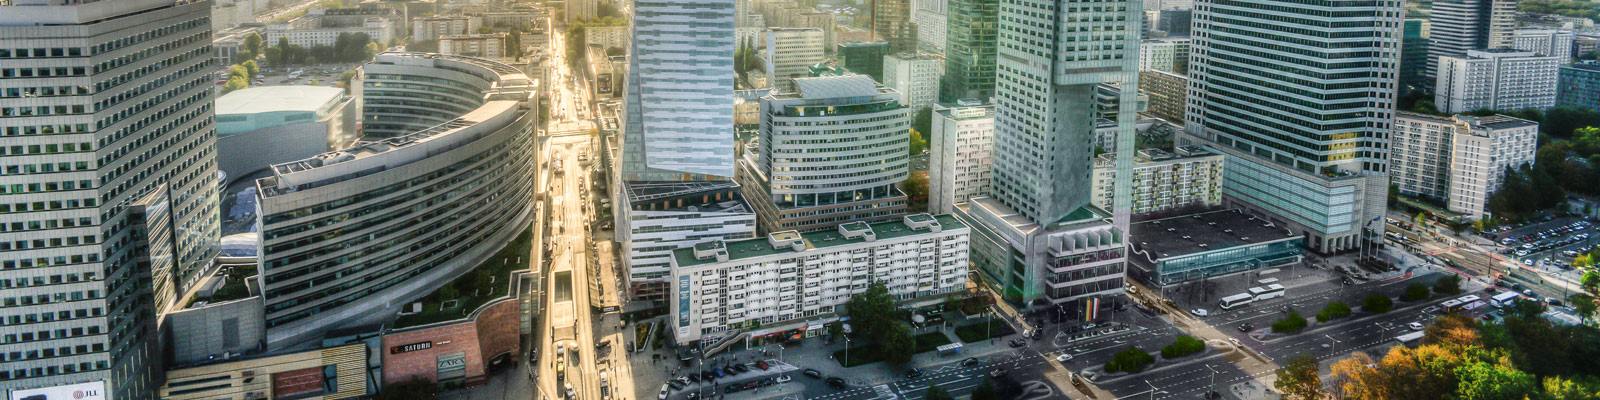 WARSAW UNIVERSITY OF TECHNOLOGY<br /> Faculty of Geodesy and Cartography